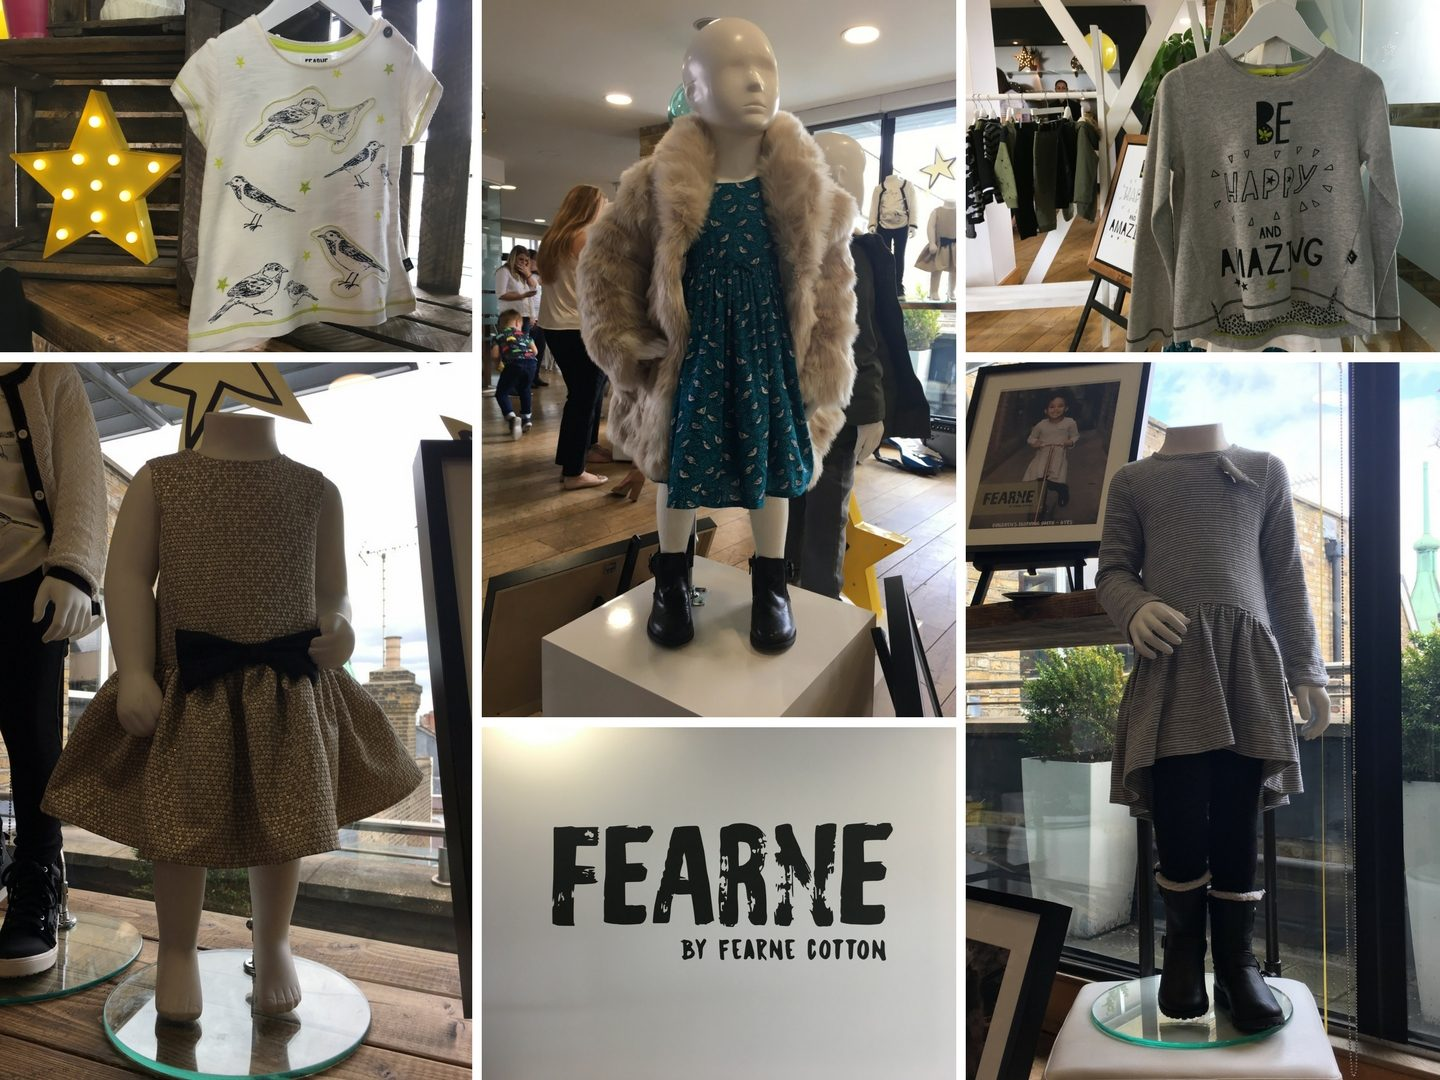 Fearne collection a Boots, Fearne cotton children's clothing, Fearne for Boots Mini Club